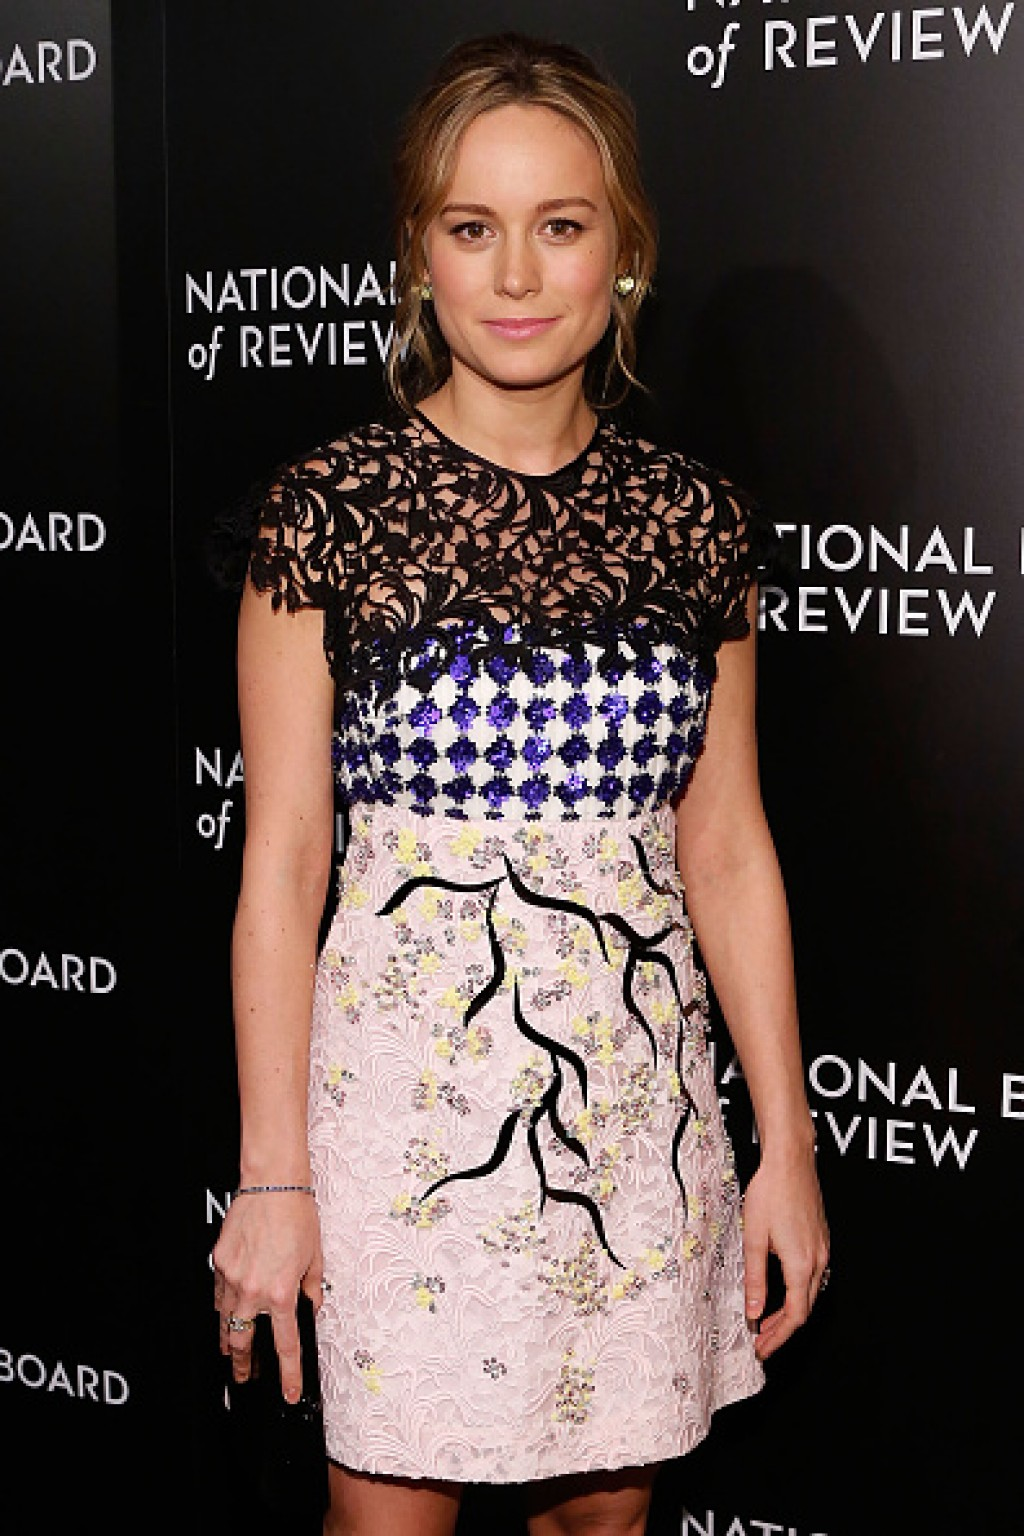 2016-National-Board-of-Review-Gala-Dress-1024x1536